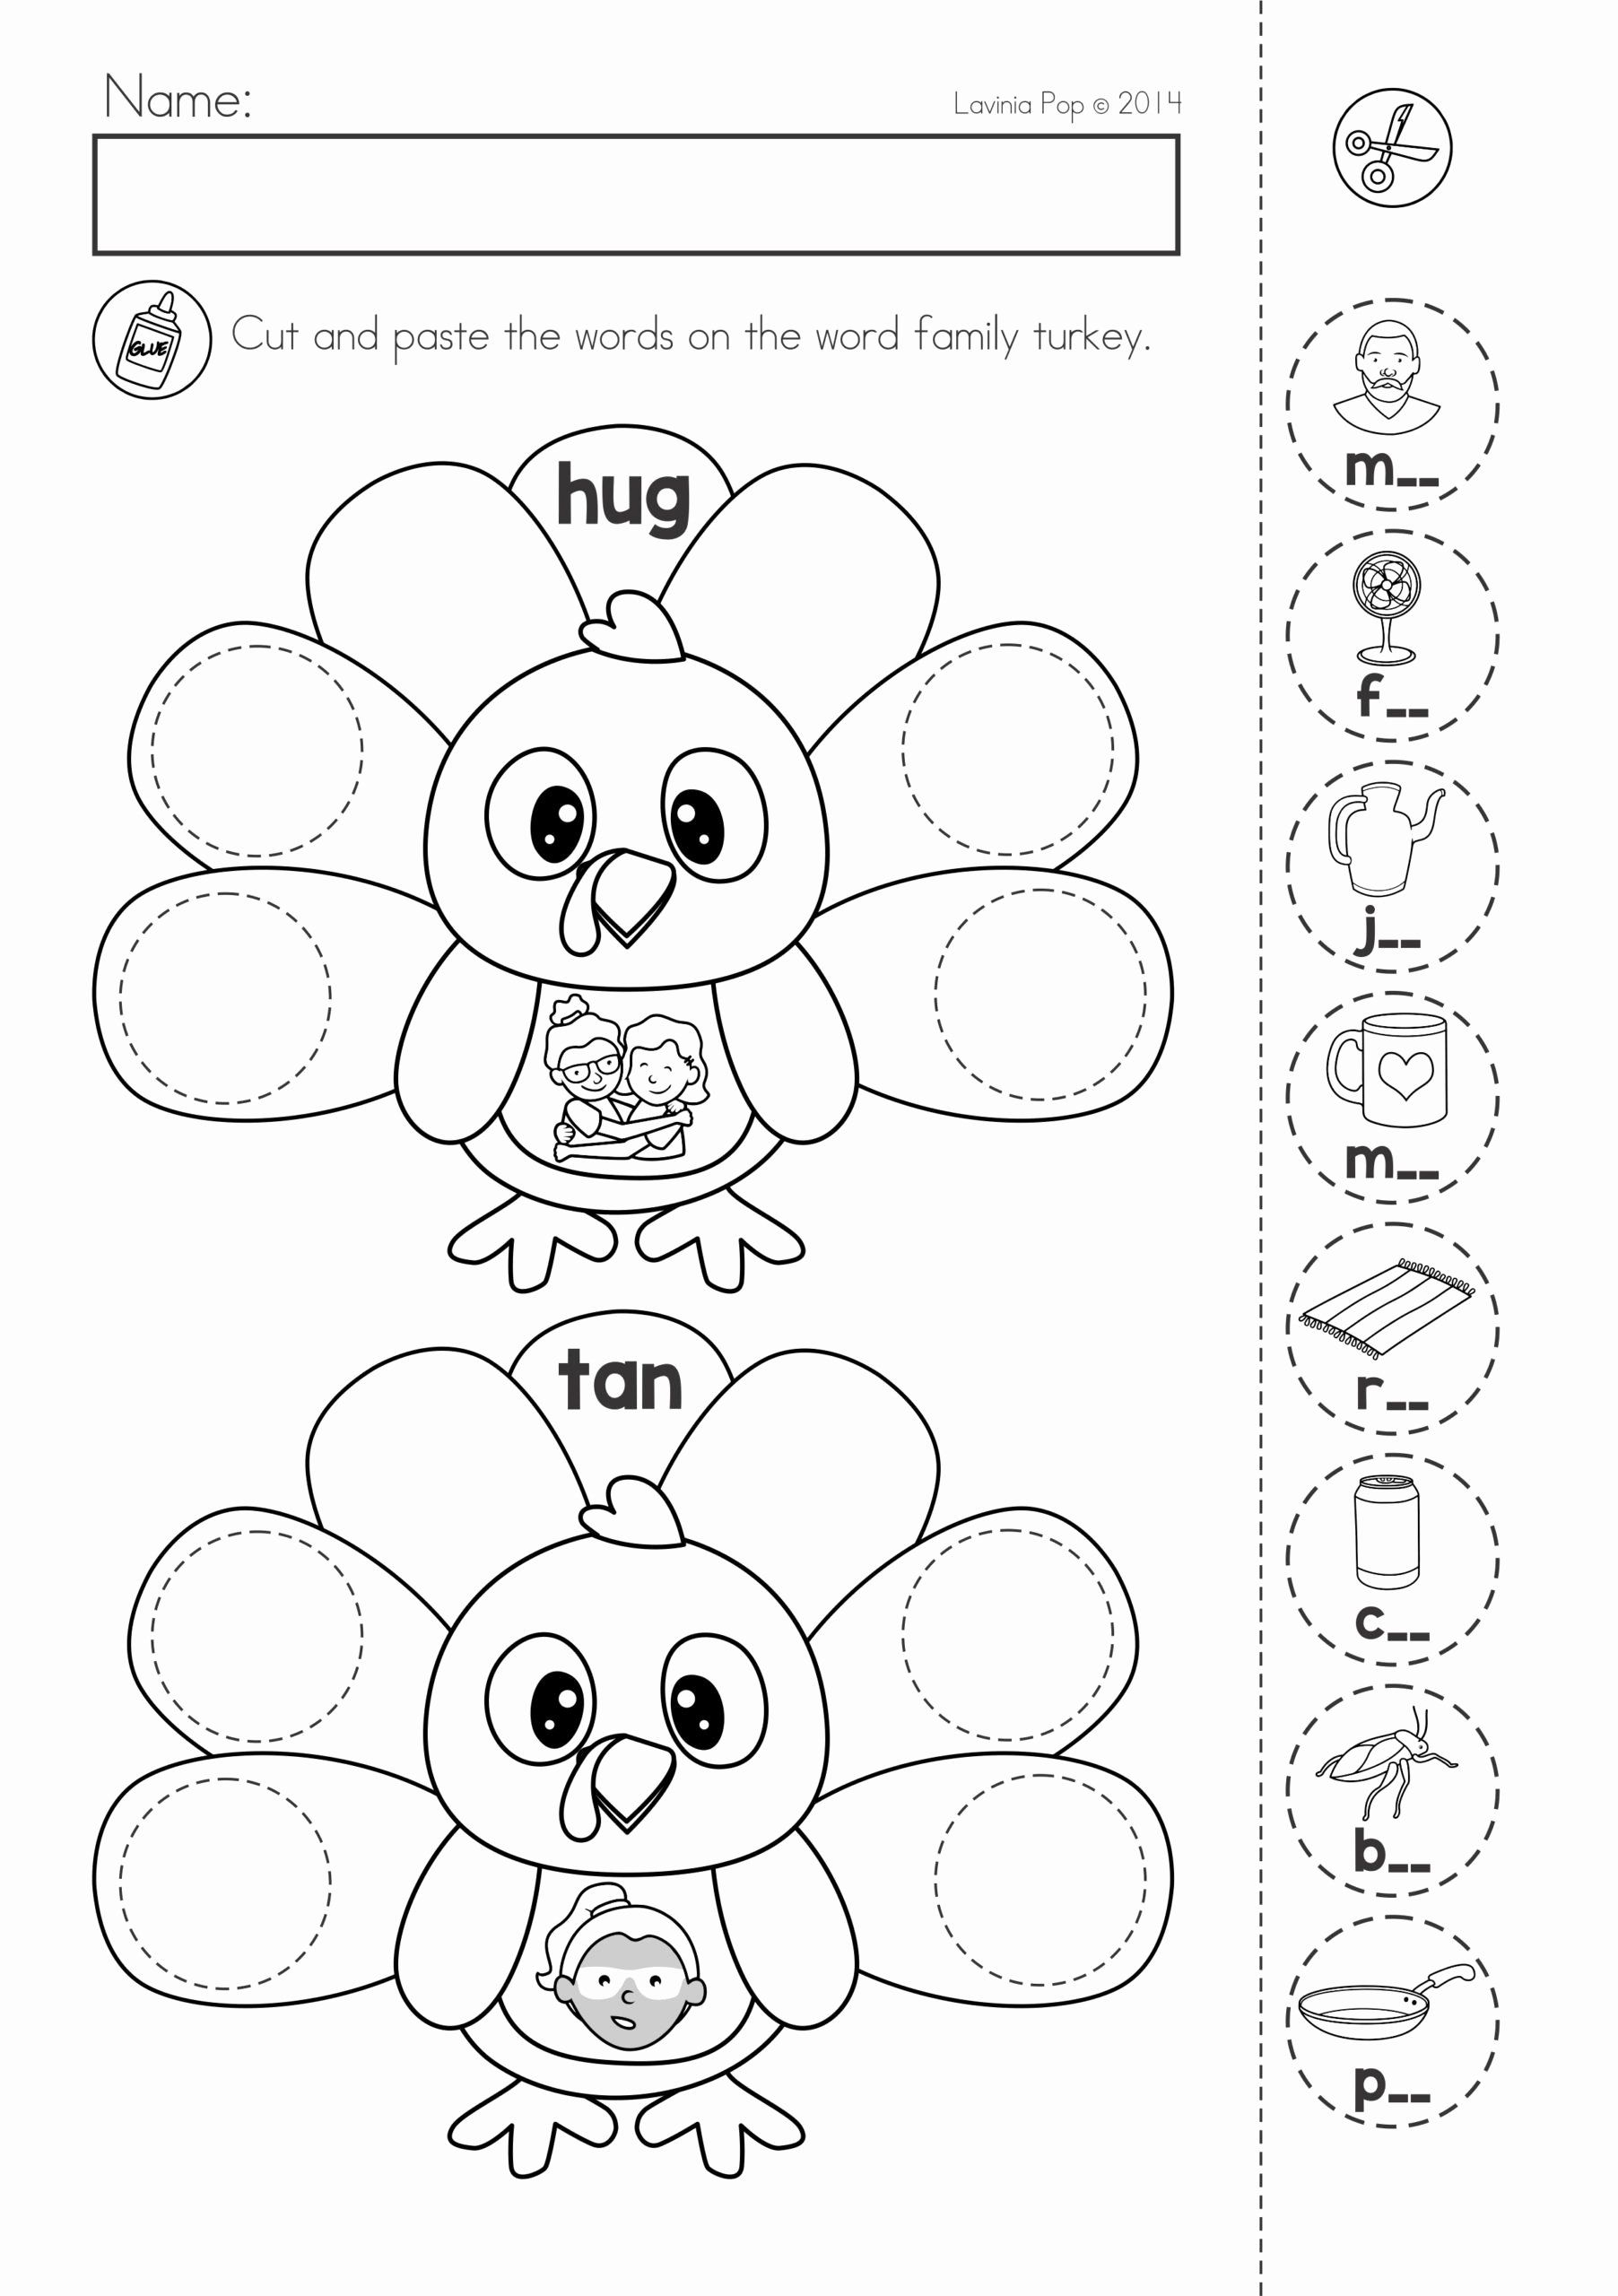 Coloring Math Activities For Preschoolers Lovely